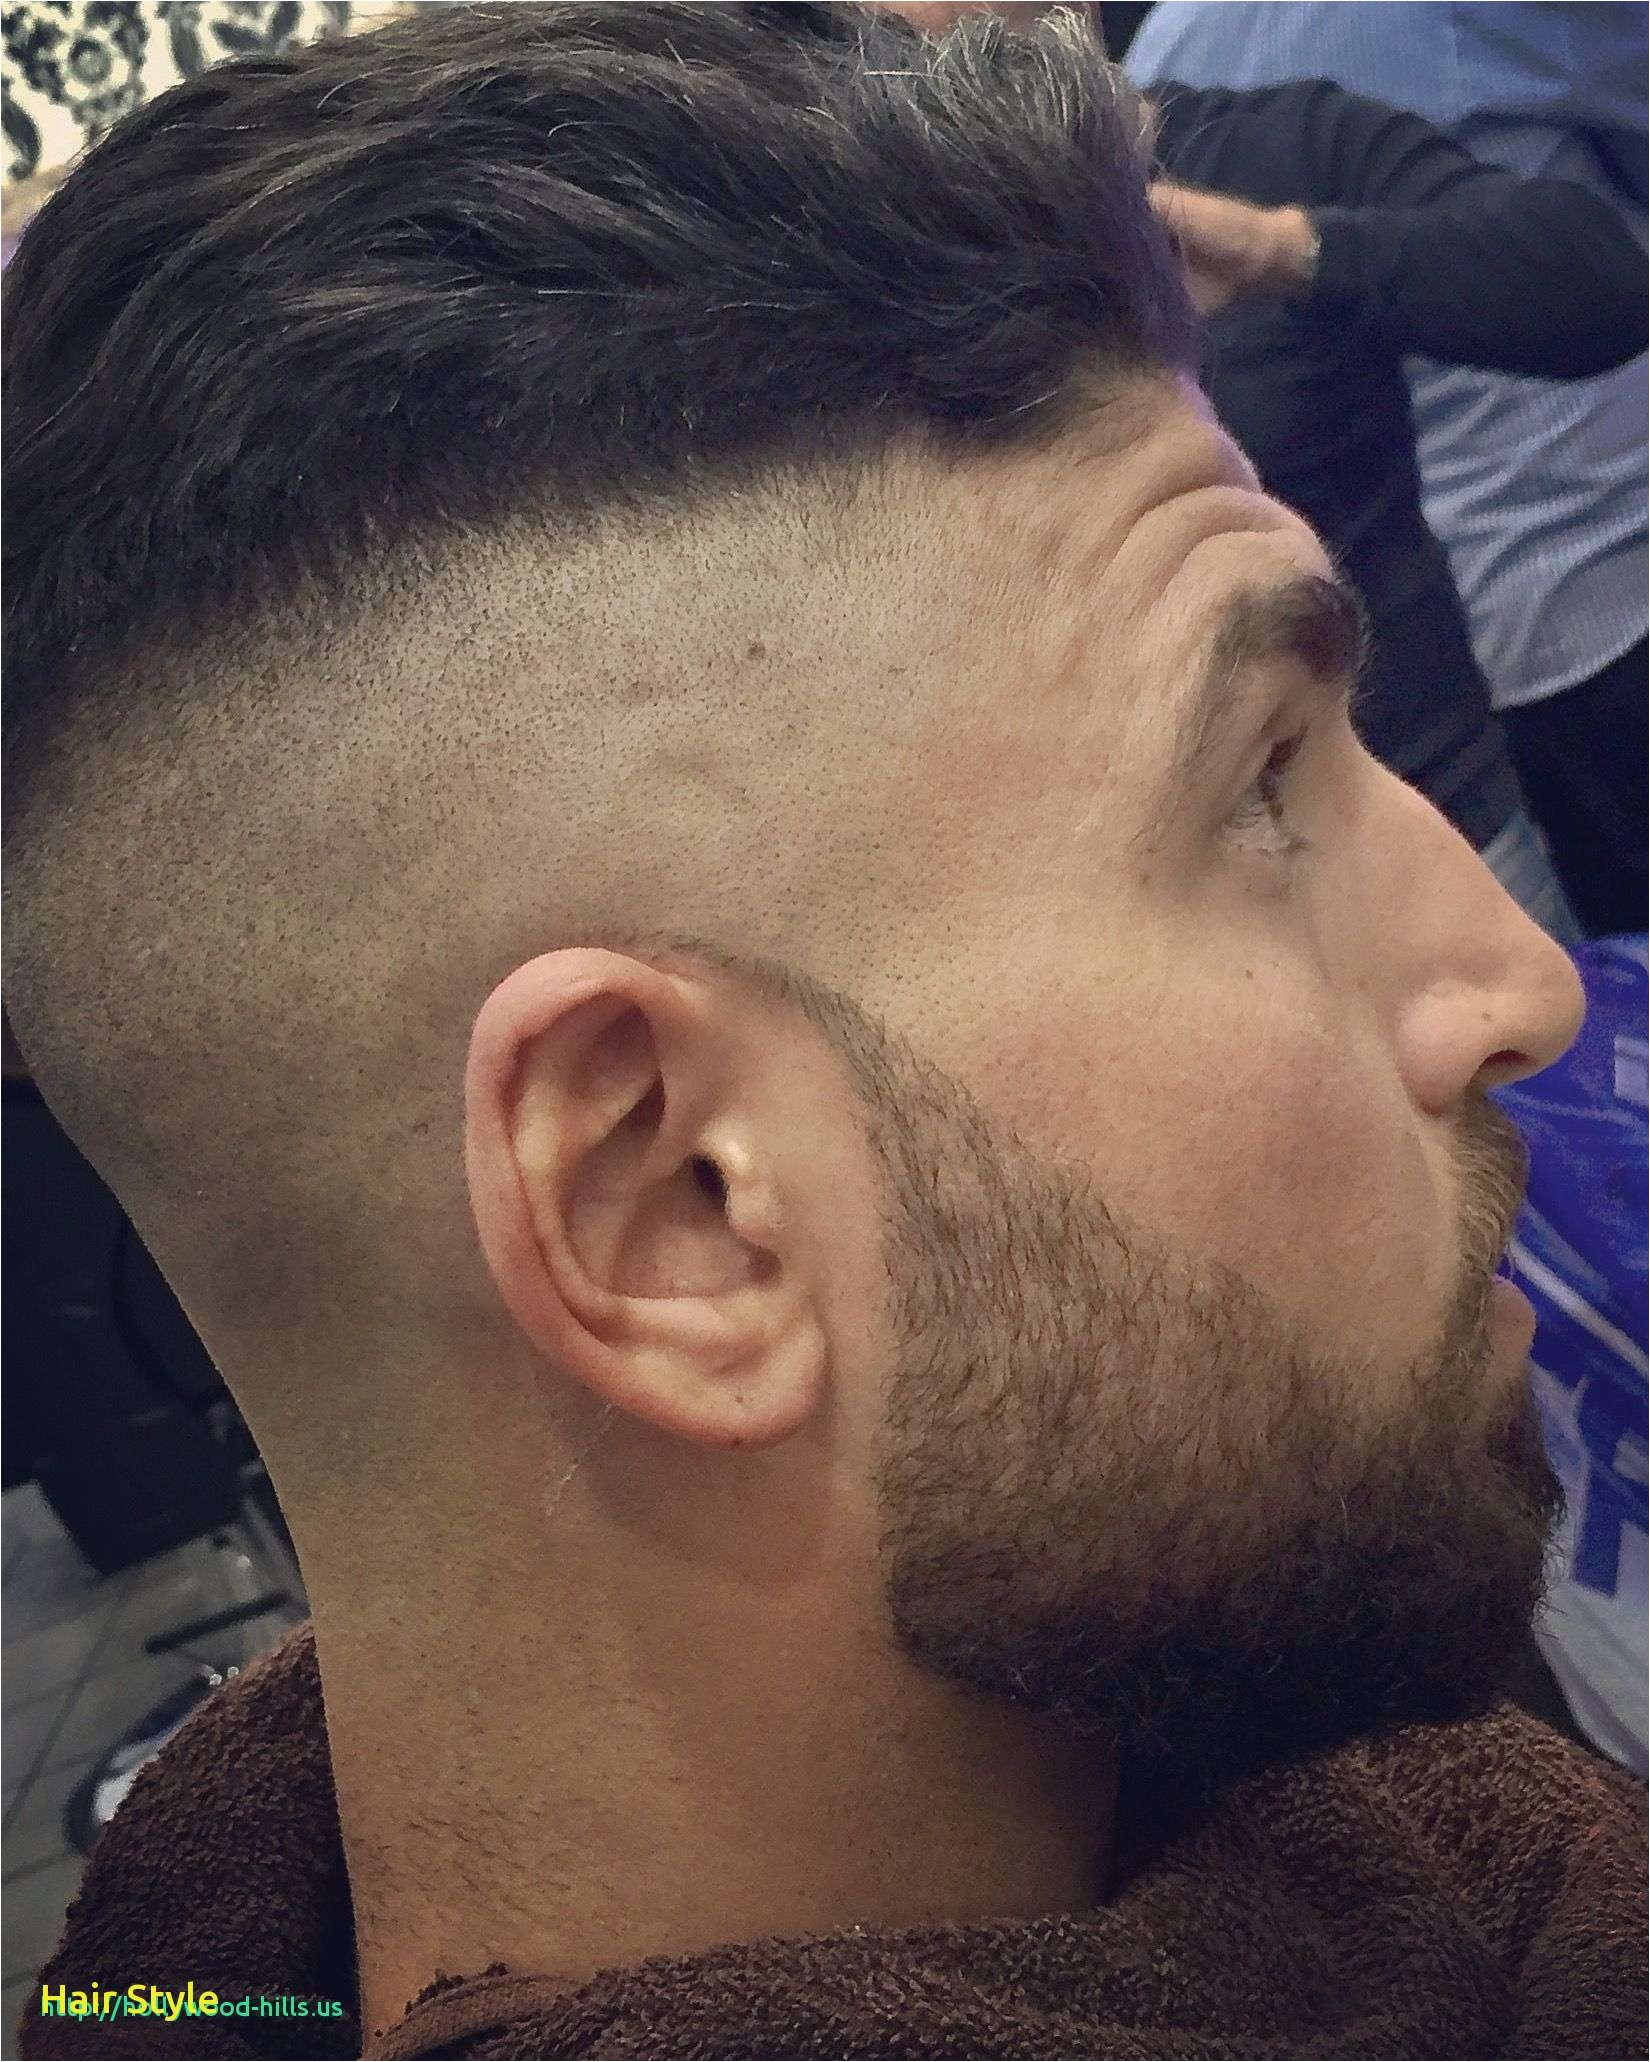 new haircut style for man elegant gym hairstyles male new hairstyles for men luxury haircuts 0d